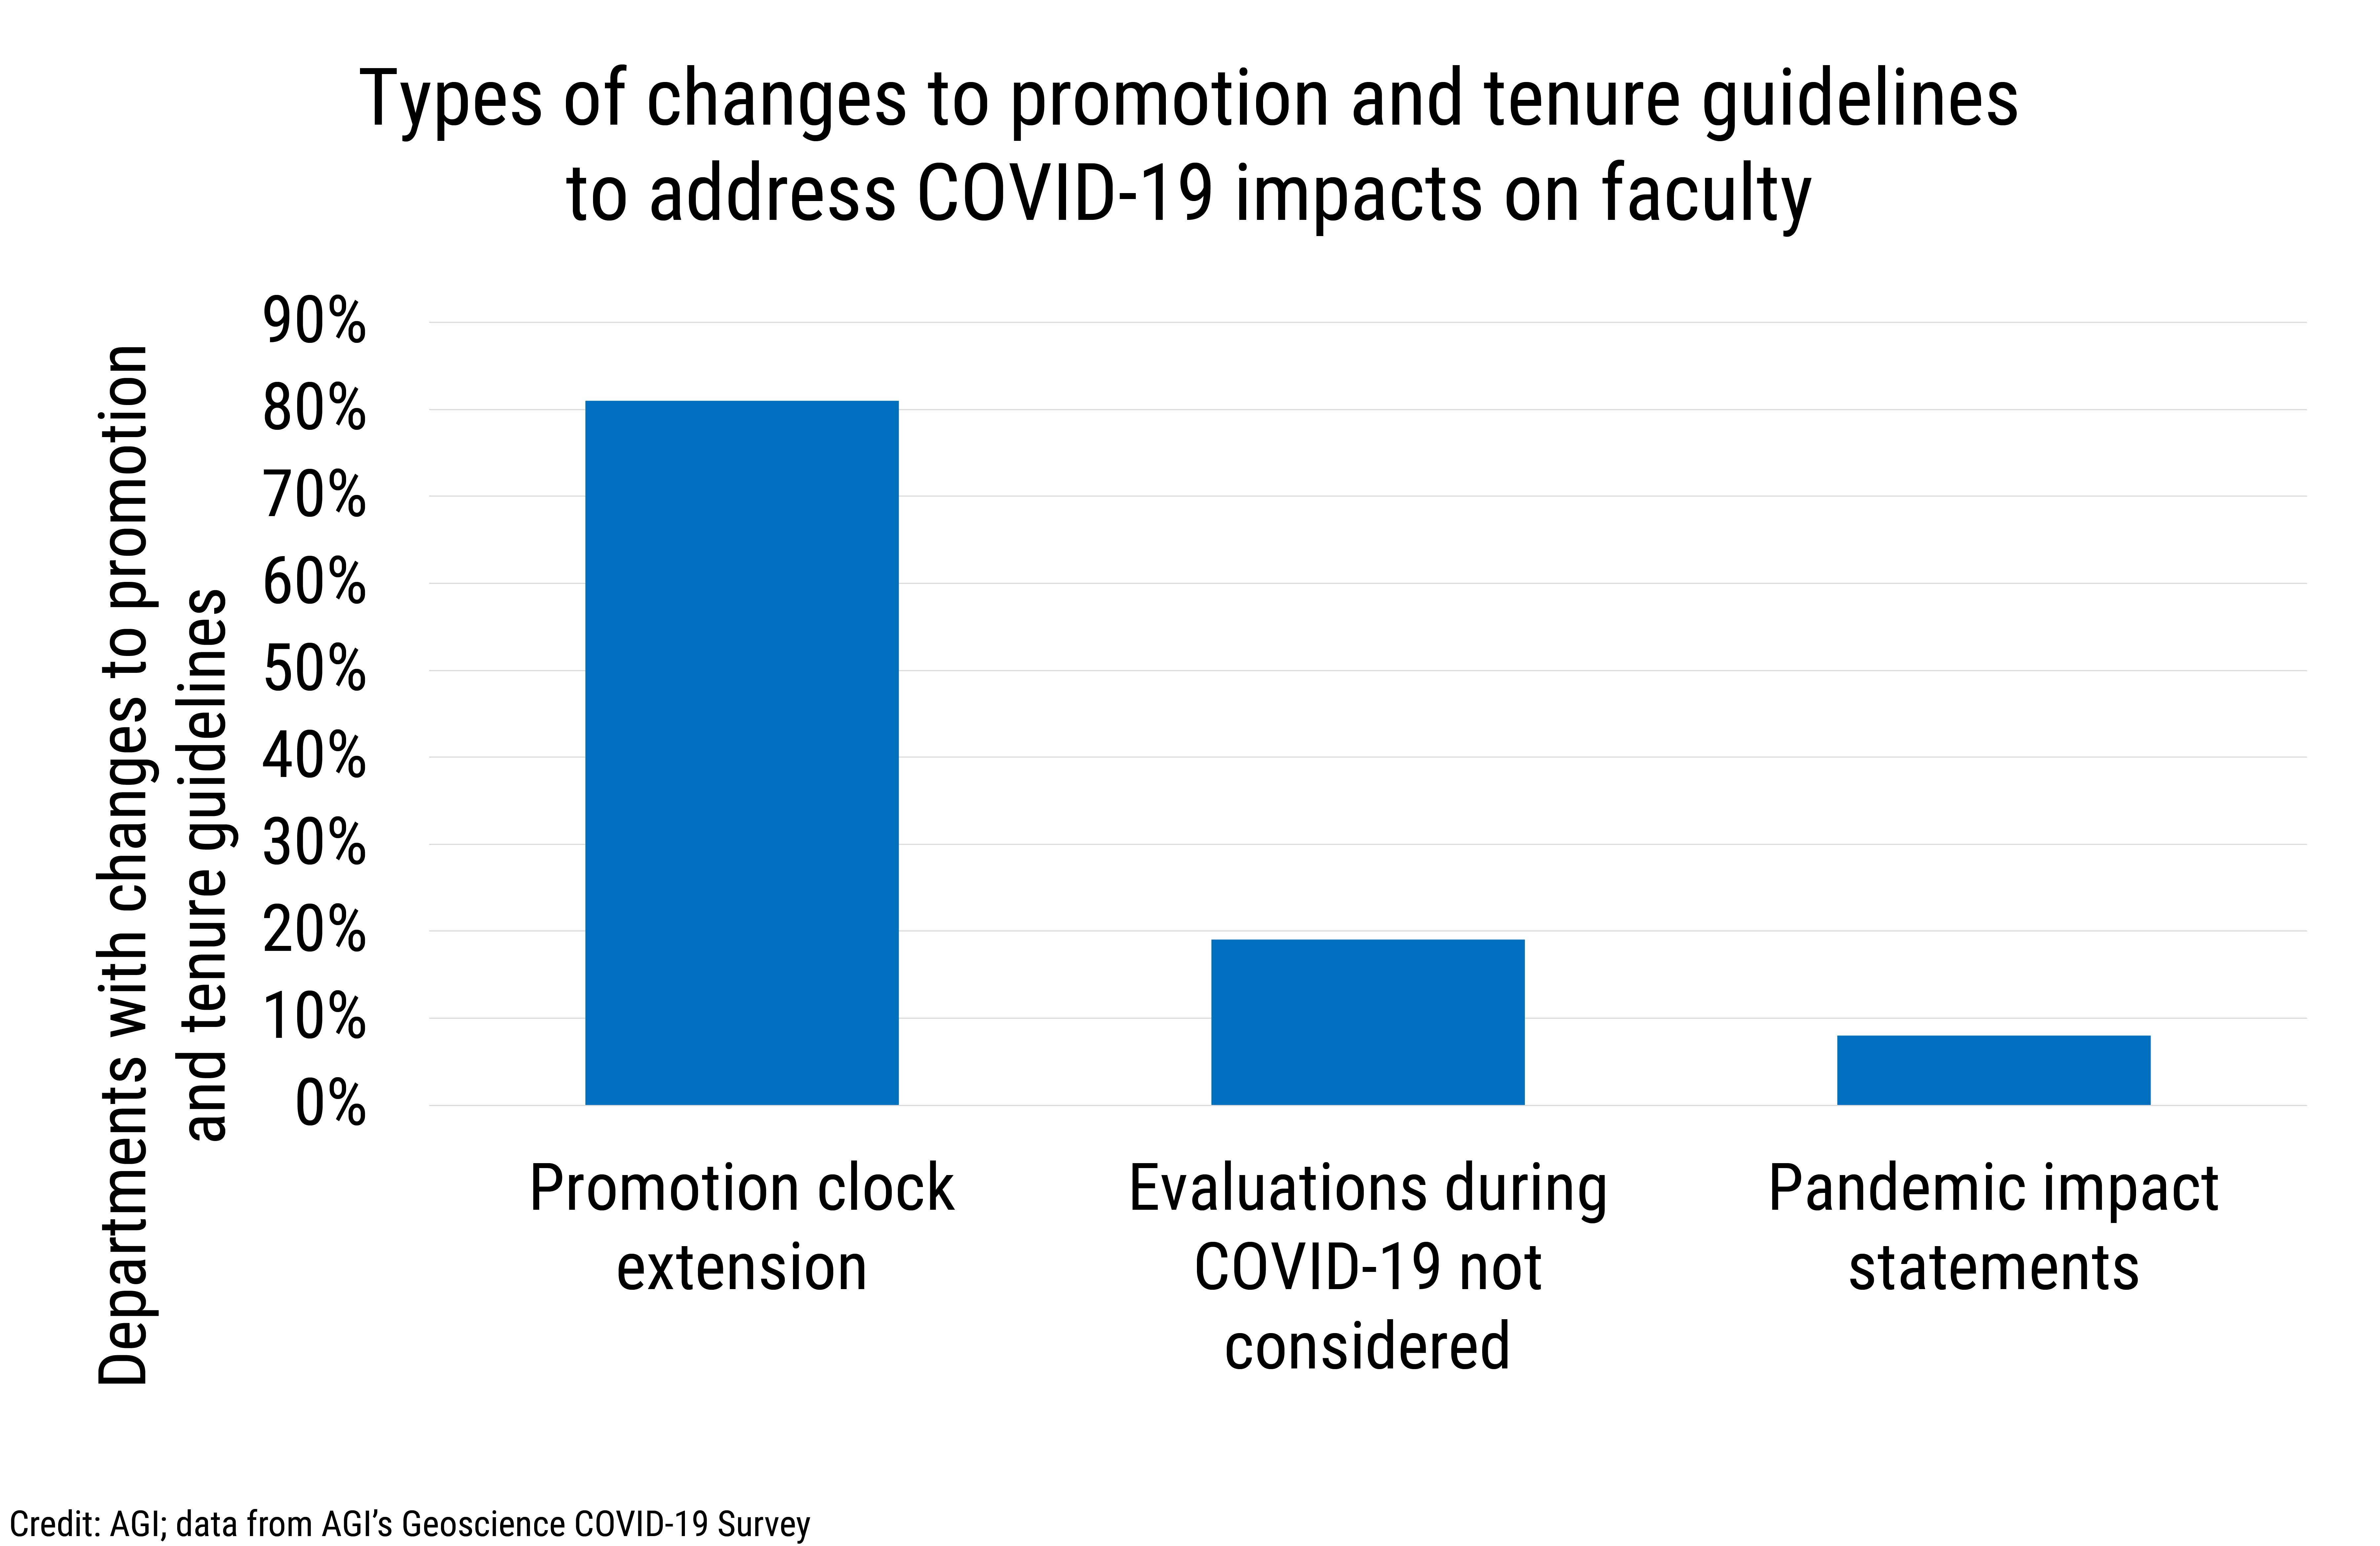 DB_2020-028 chart 05:  Types of changes to promotion and tenure guidelines to address COVID-19 impacts on faculty (Credit: AGI; data from AGI's Geoscience COVID-19 Survey)